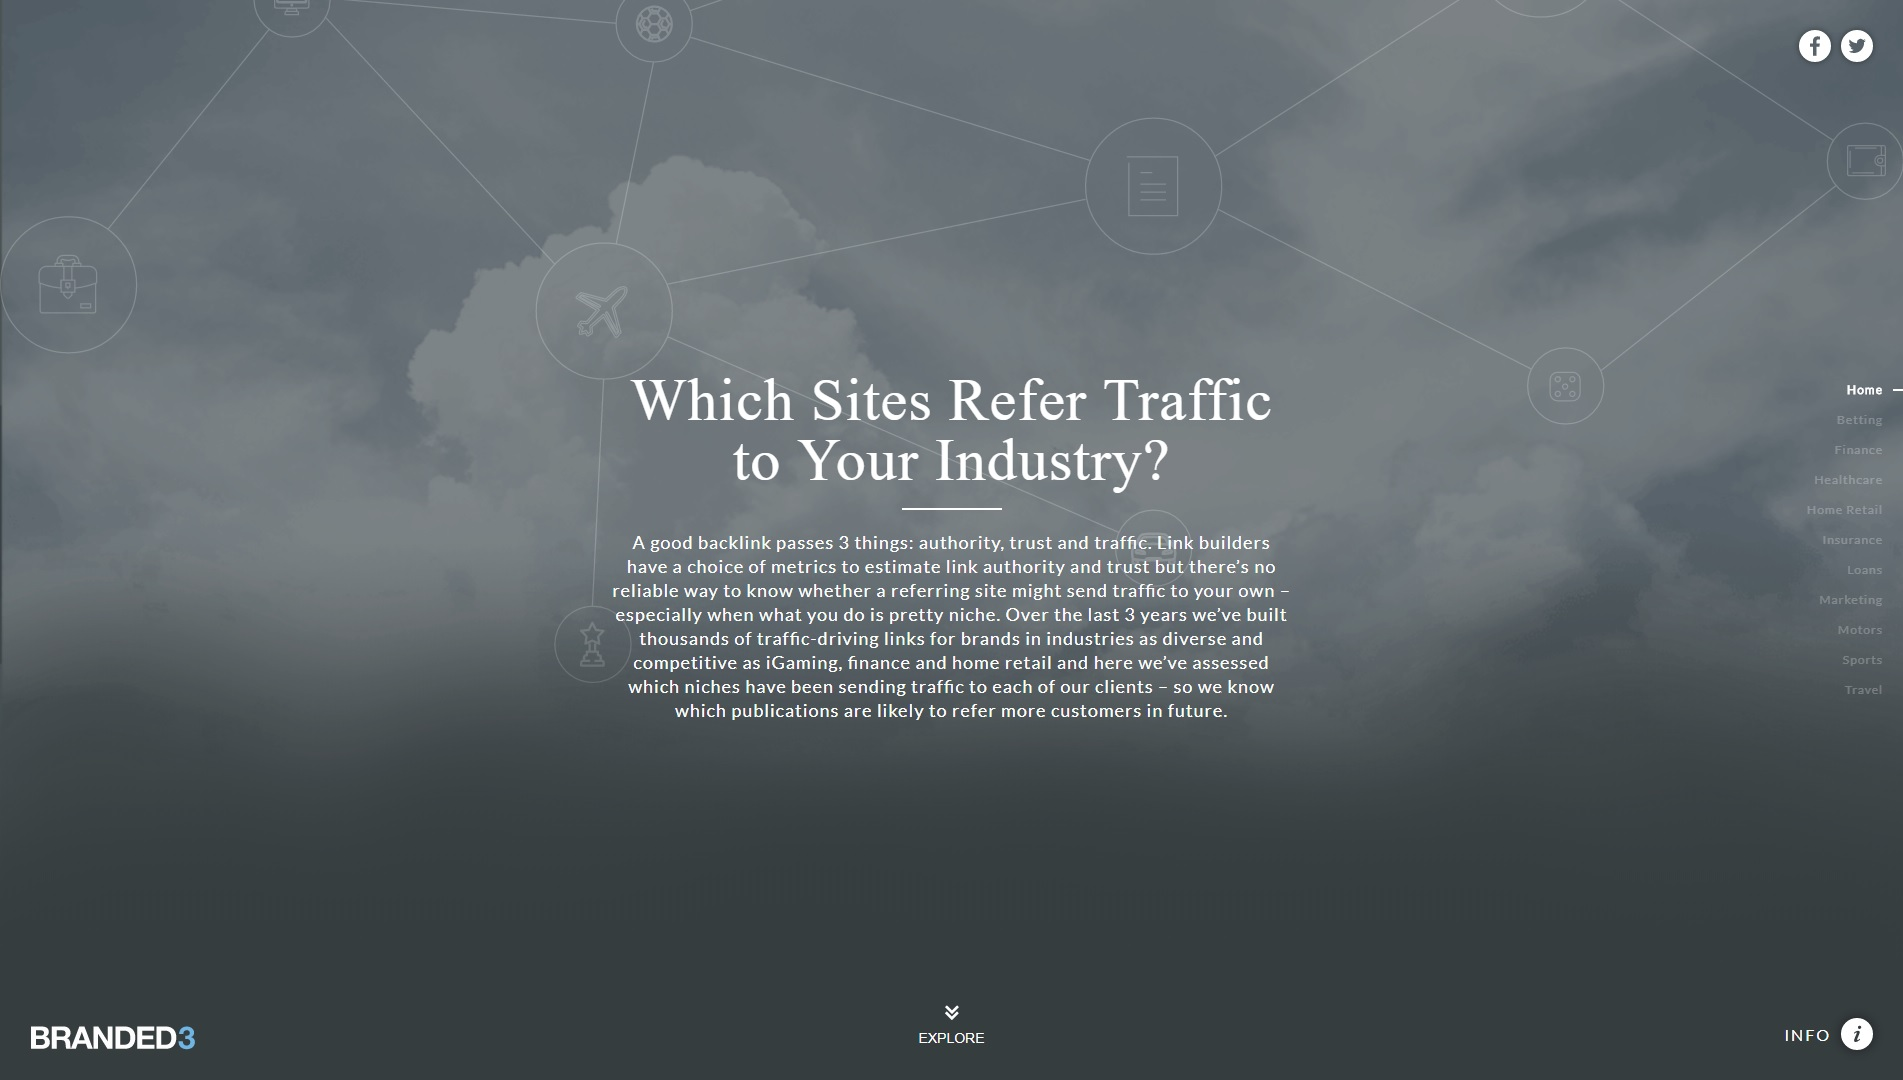 Which sites refer traffic to your industry study